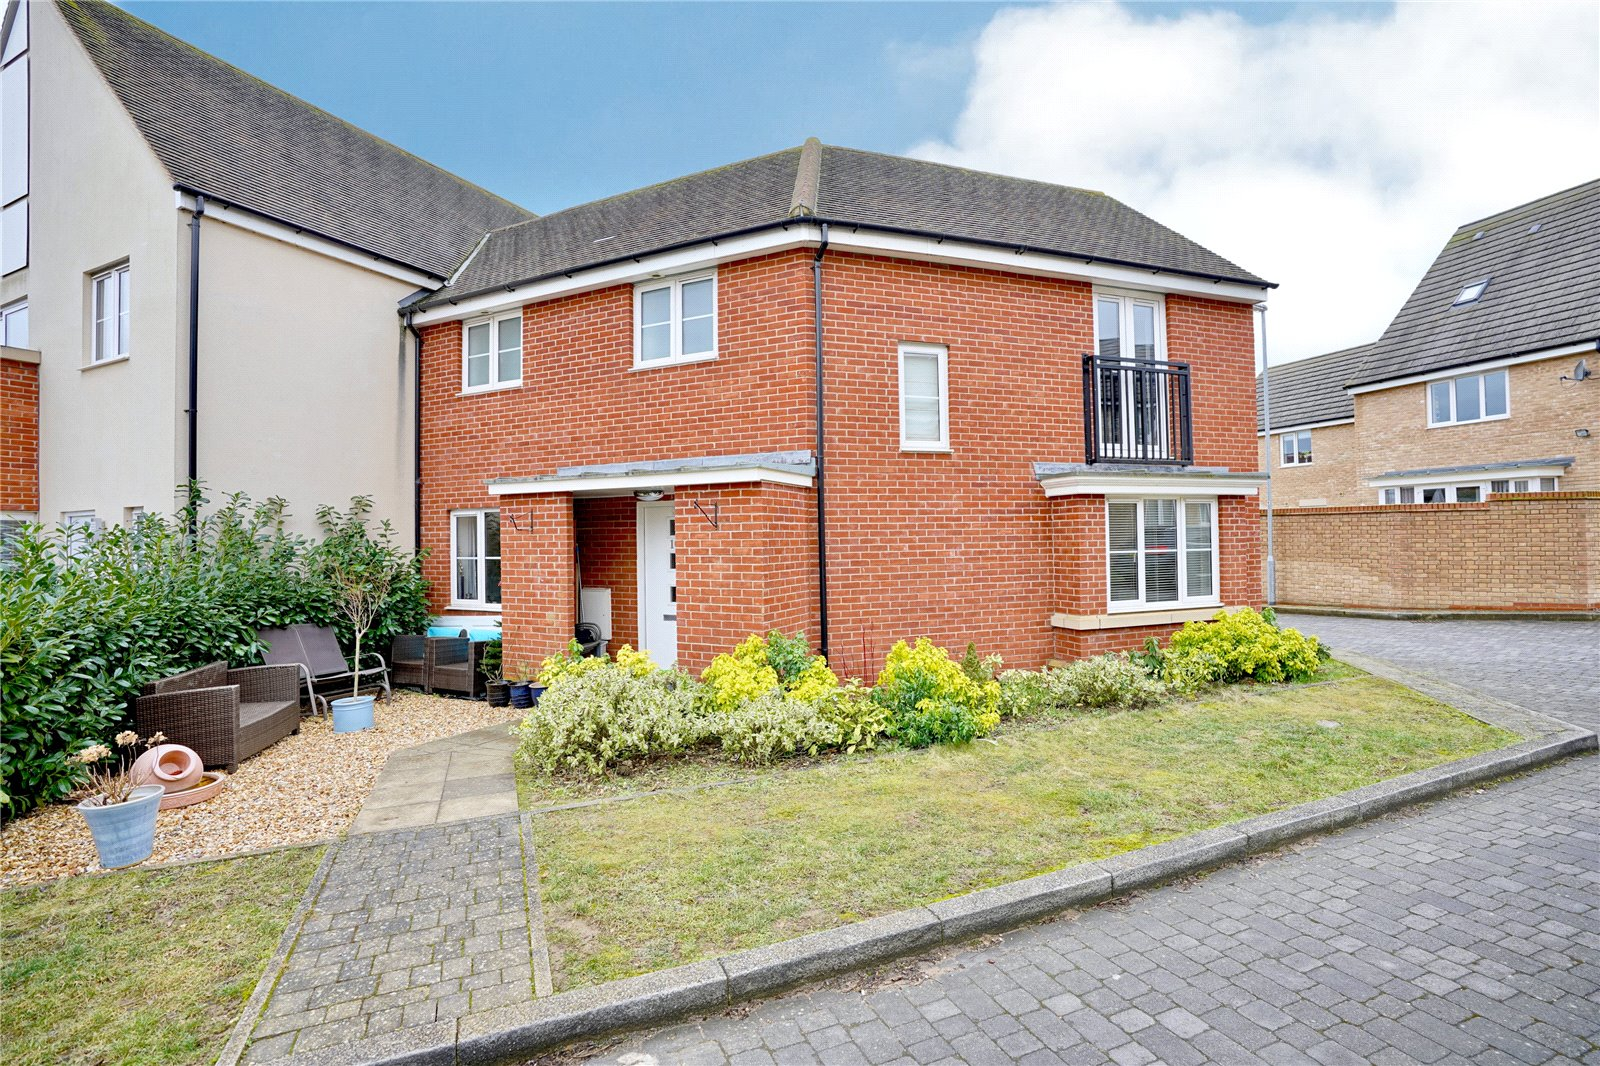 3 bed house for sale in St Neots, PE19 6DL, PE19